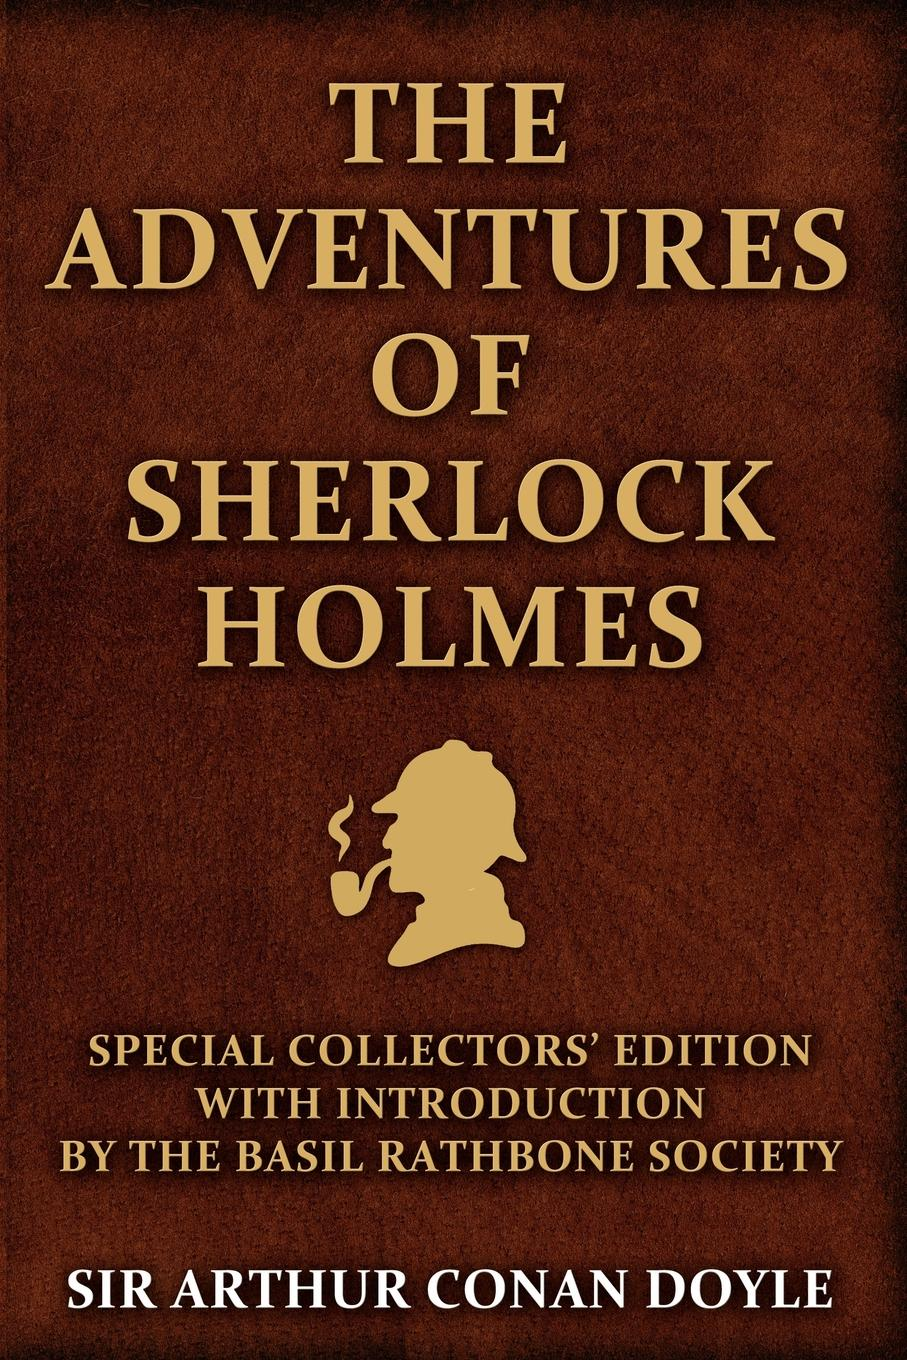 цена на Arthur Conan Doyle The Adventures of Sherlock Holmes. Special Collectors Edition: With an Introduction by the Basil Rathbone Society